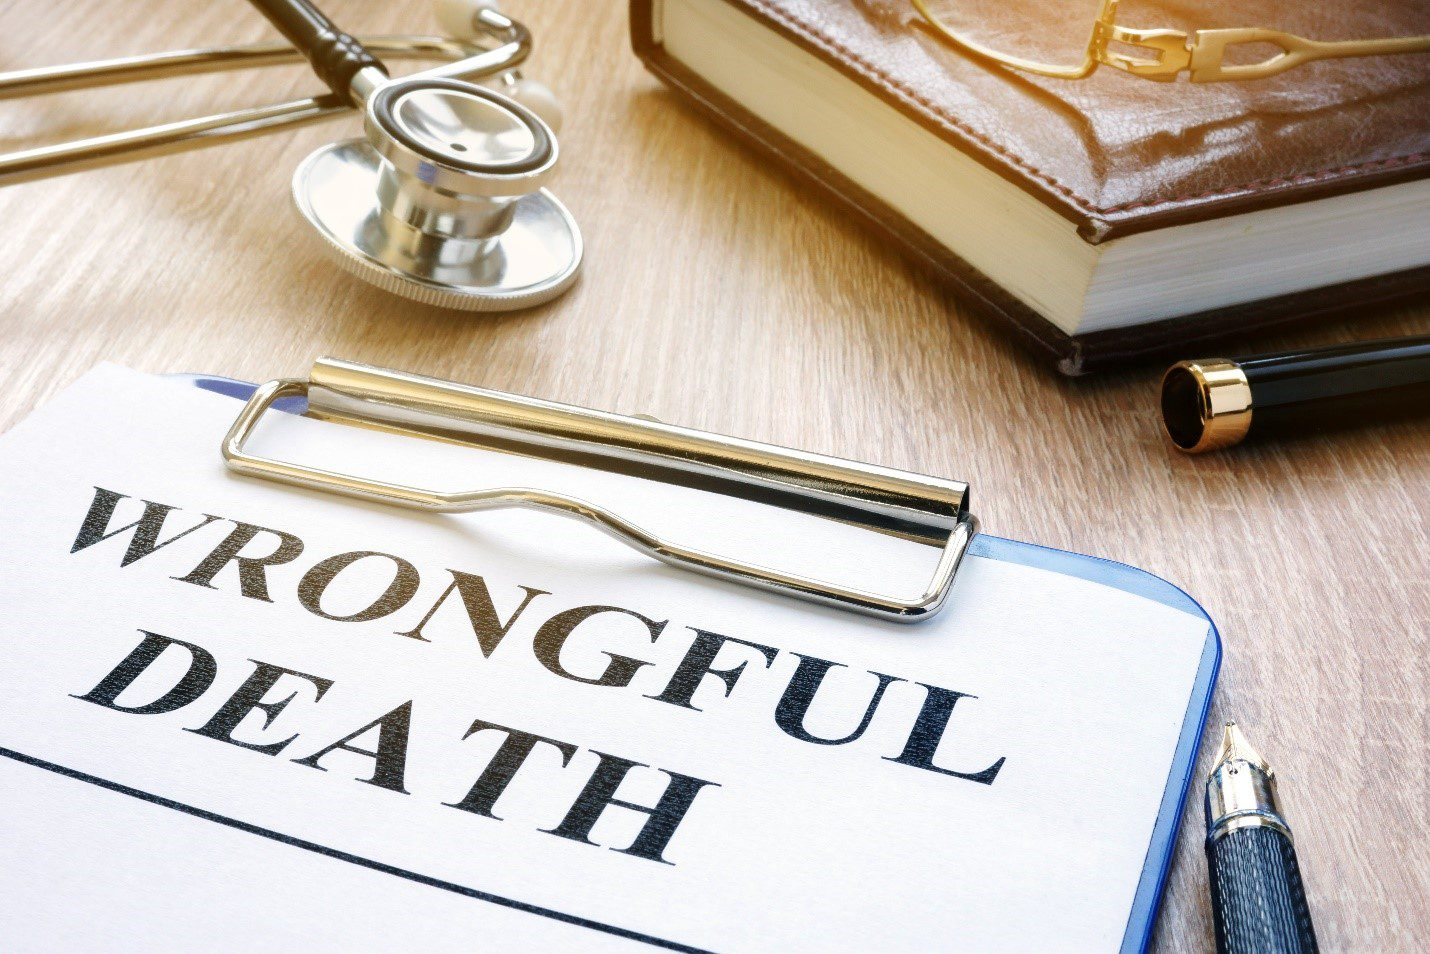 Wrongful death concept image with stethoscope and law book